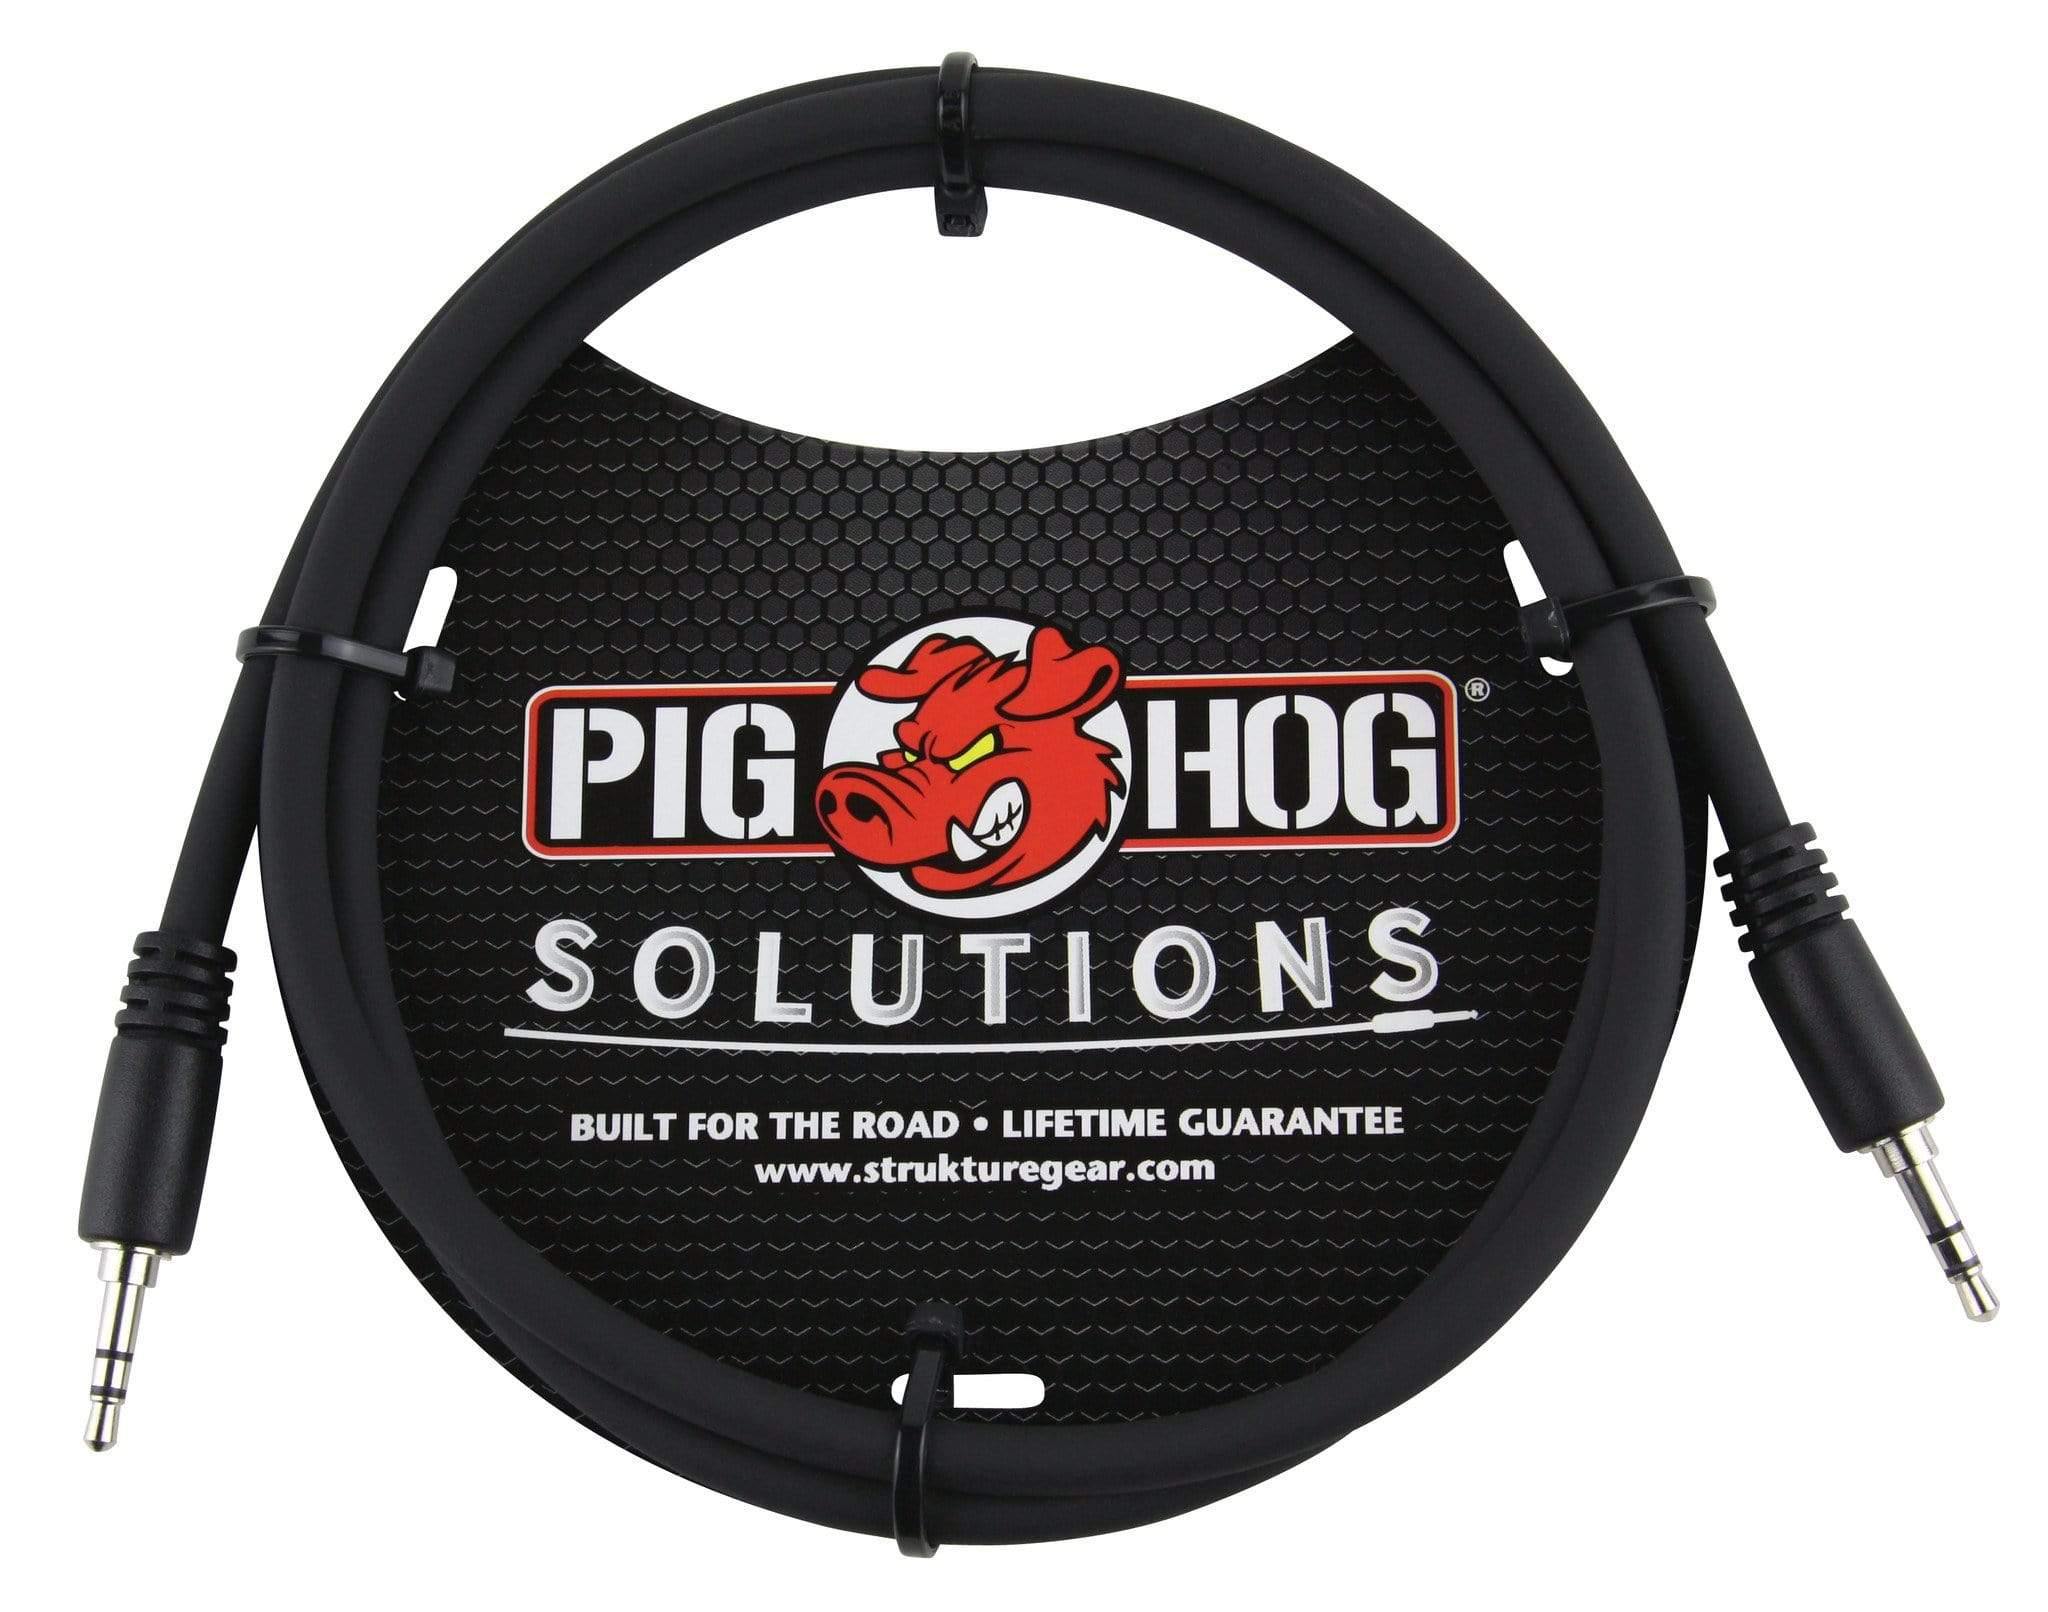 "PIG HOG INTERCONNECT CABLES Pig Hog 6 ft 3.5mm TRS Stereo Male Plug Cable 1/8"" Mini Patch Phone Pad Audio"